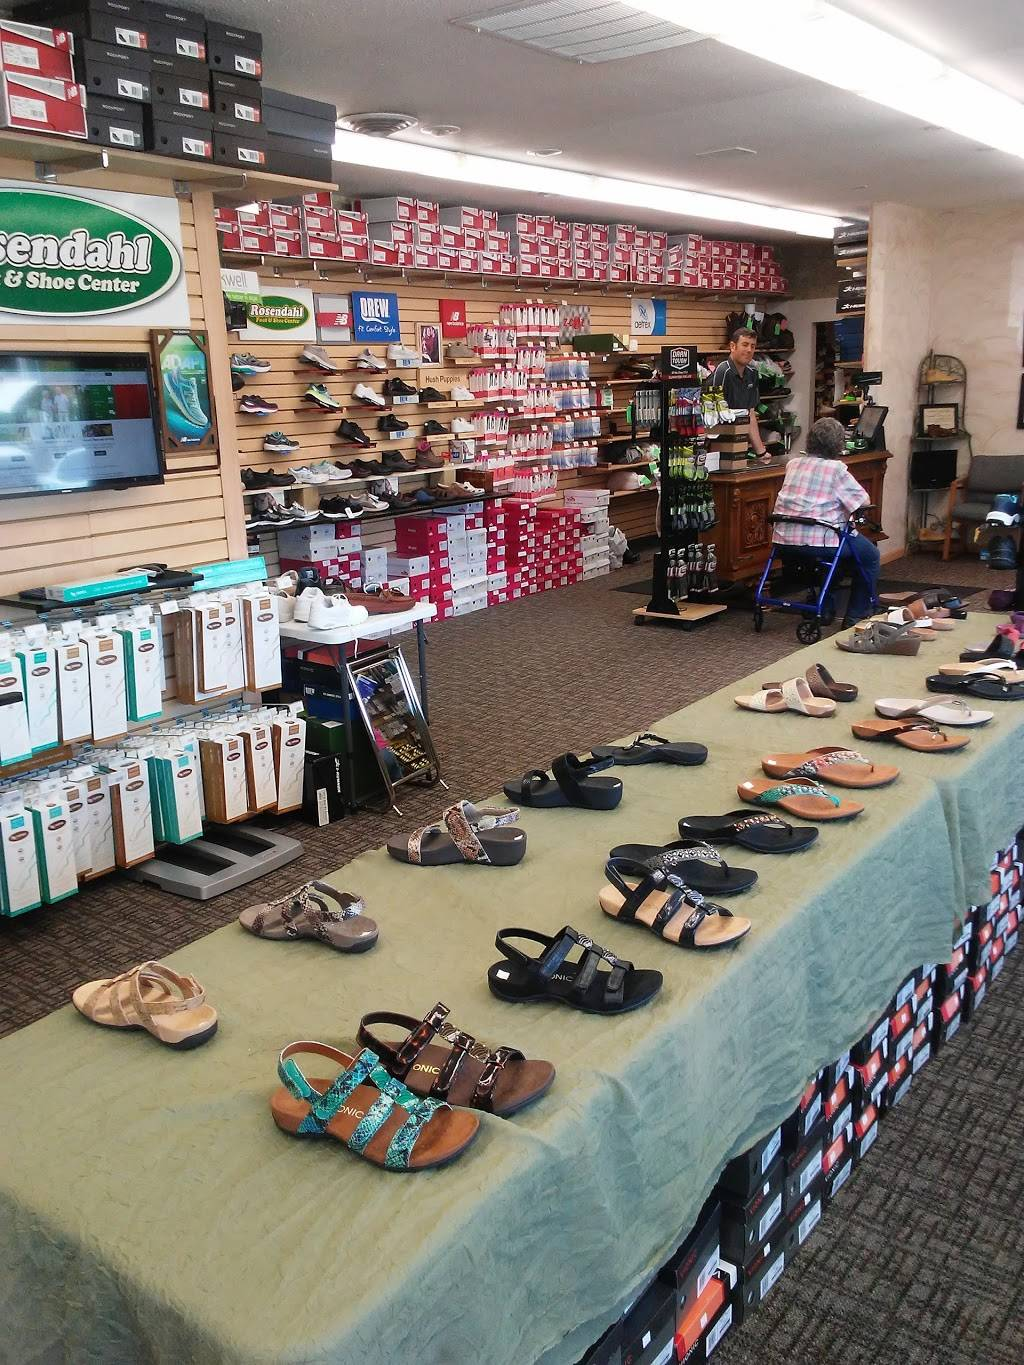 Rosendahl Foot & Shoe Center - shoe store  | Photo 5 of 9 | Address: 125 S Curtis Rd, Boise, ID 83705, USA | Phone: (208) 343-4242